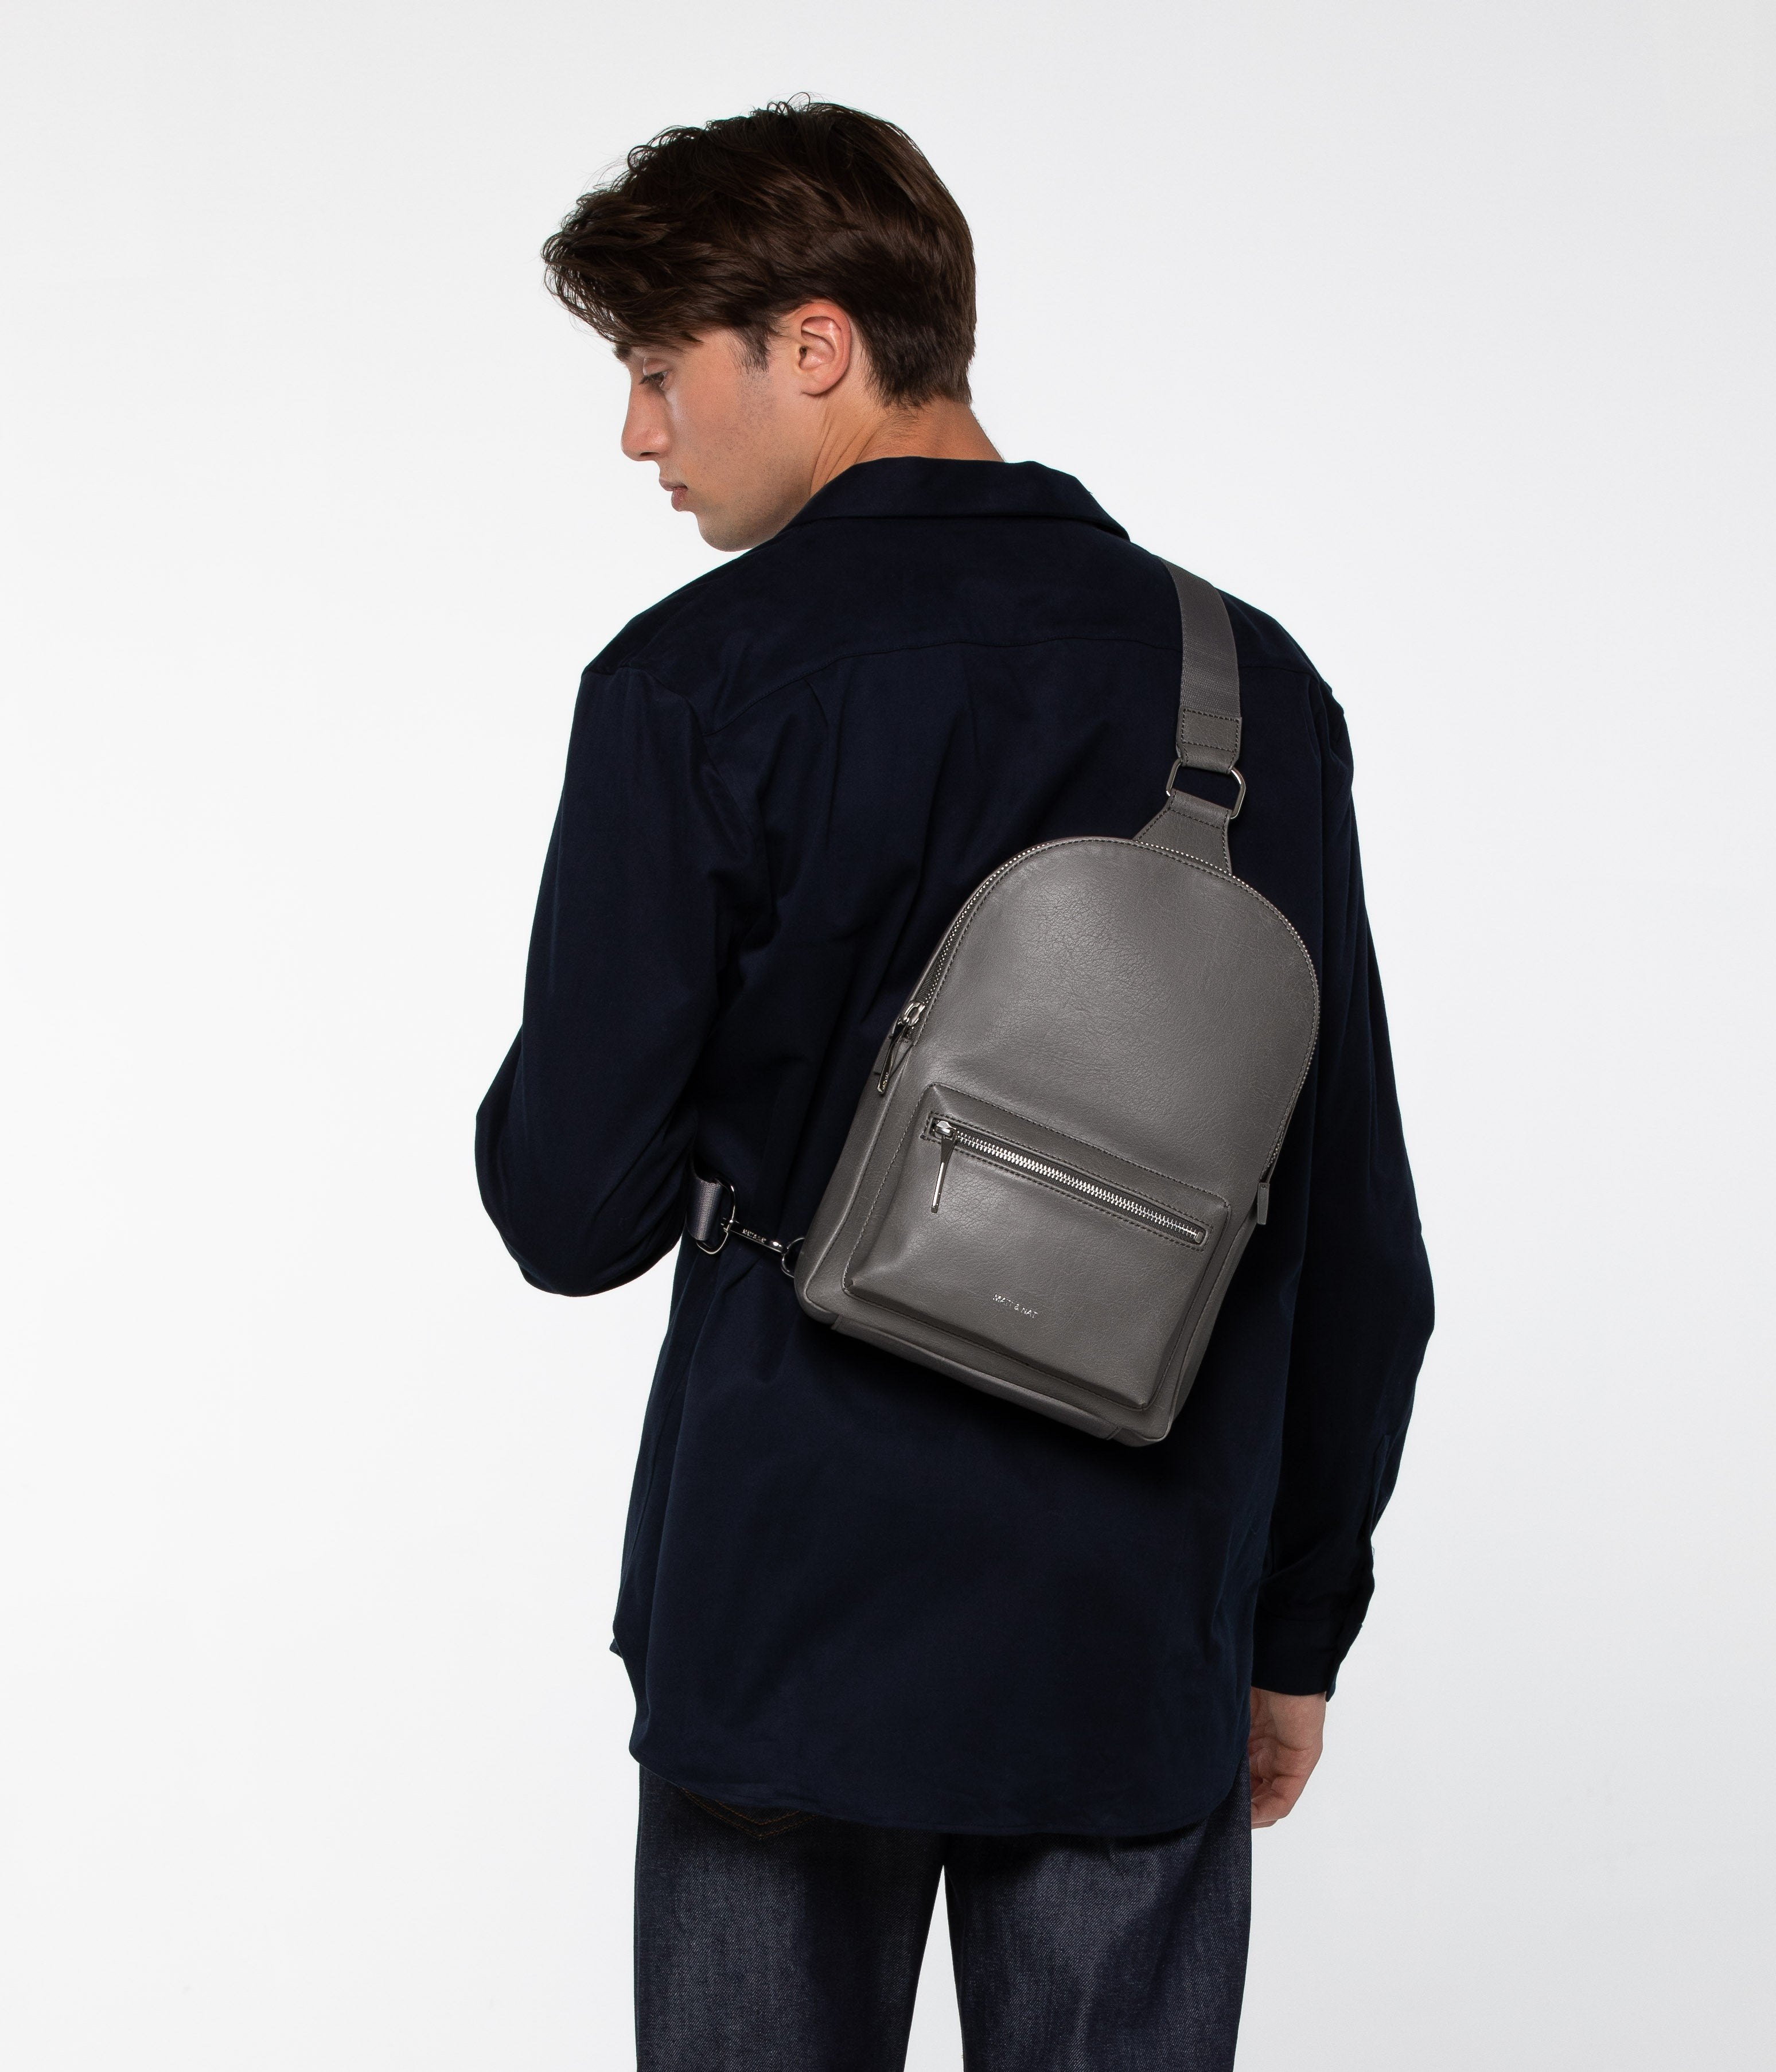 Voas Vintage Backpack-Backpacks-Matt And Nat-bags-Saskatchewan-vegan leather-Coda & Cade